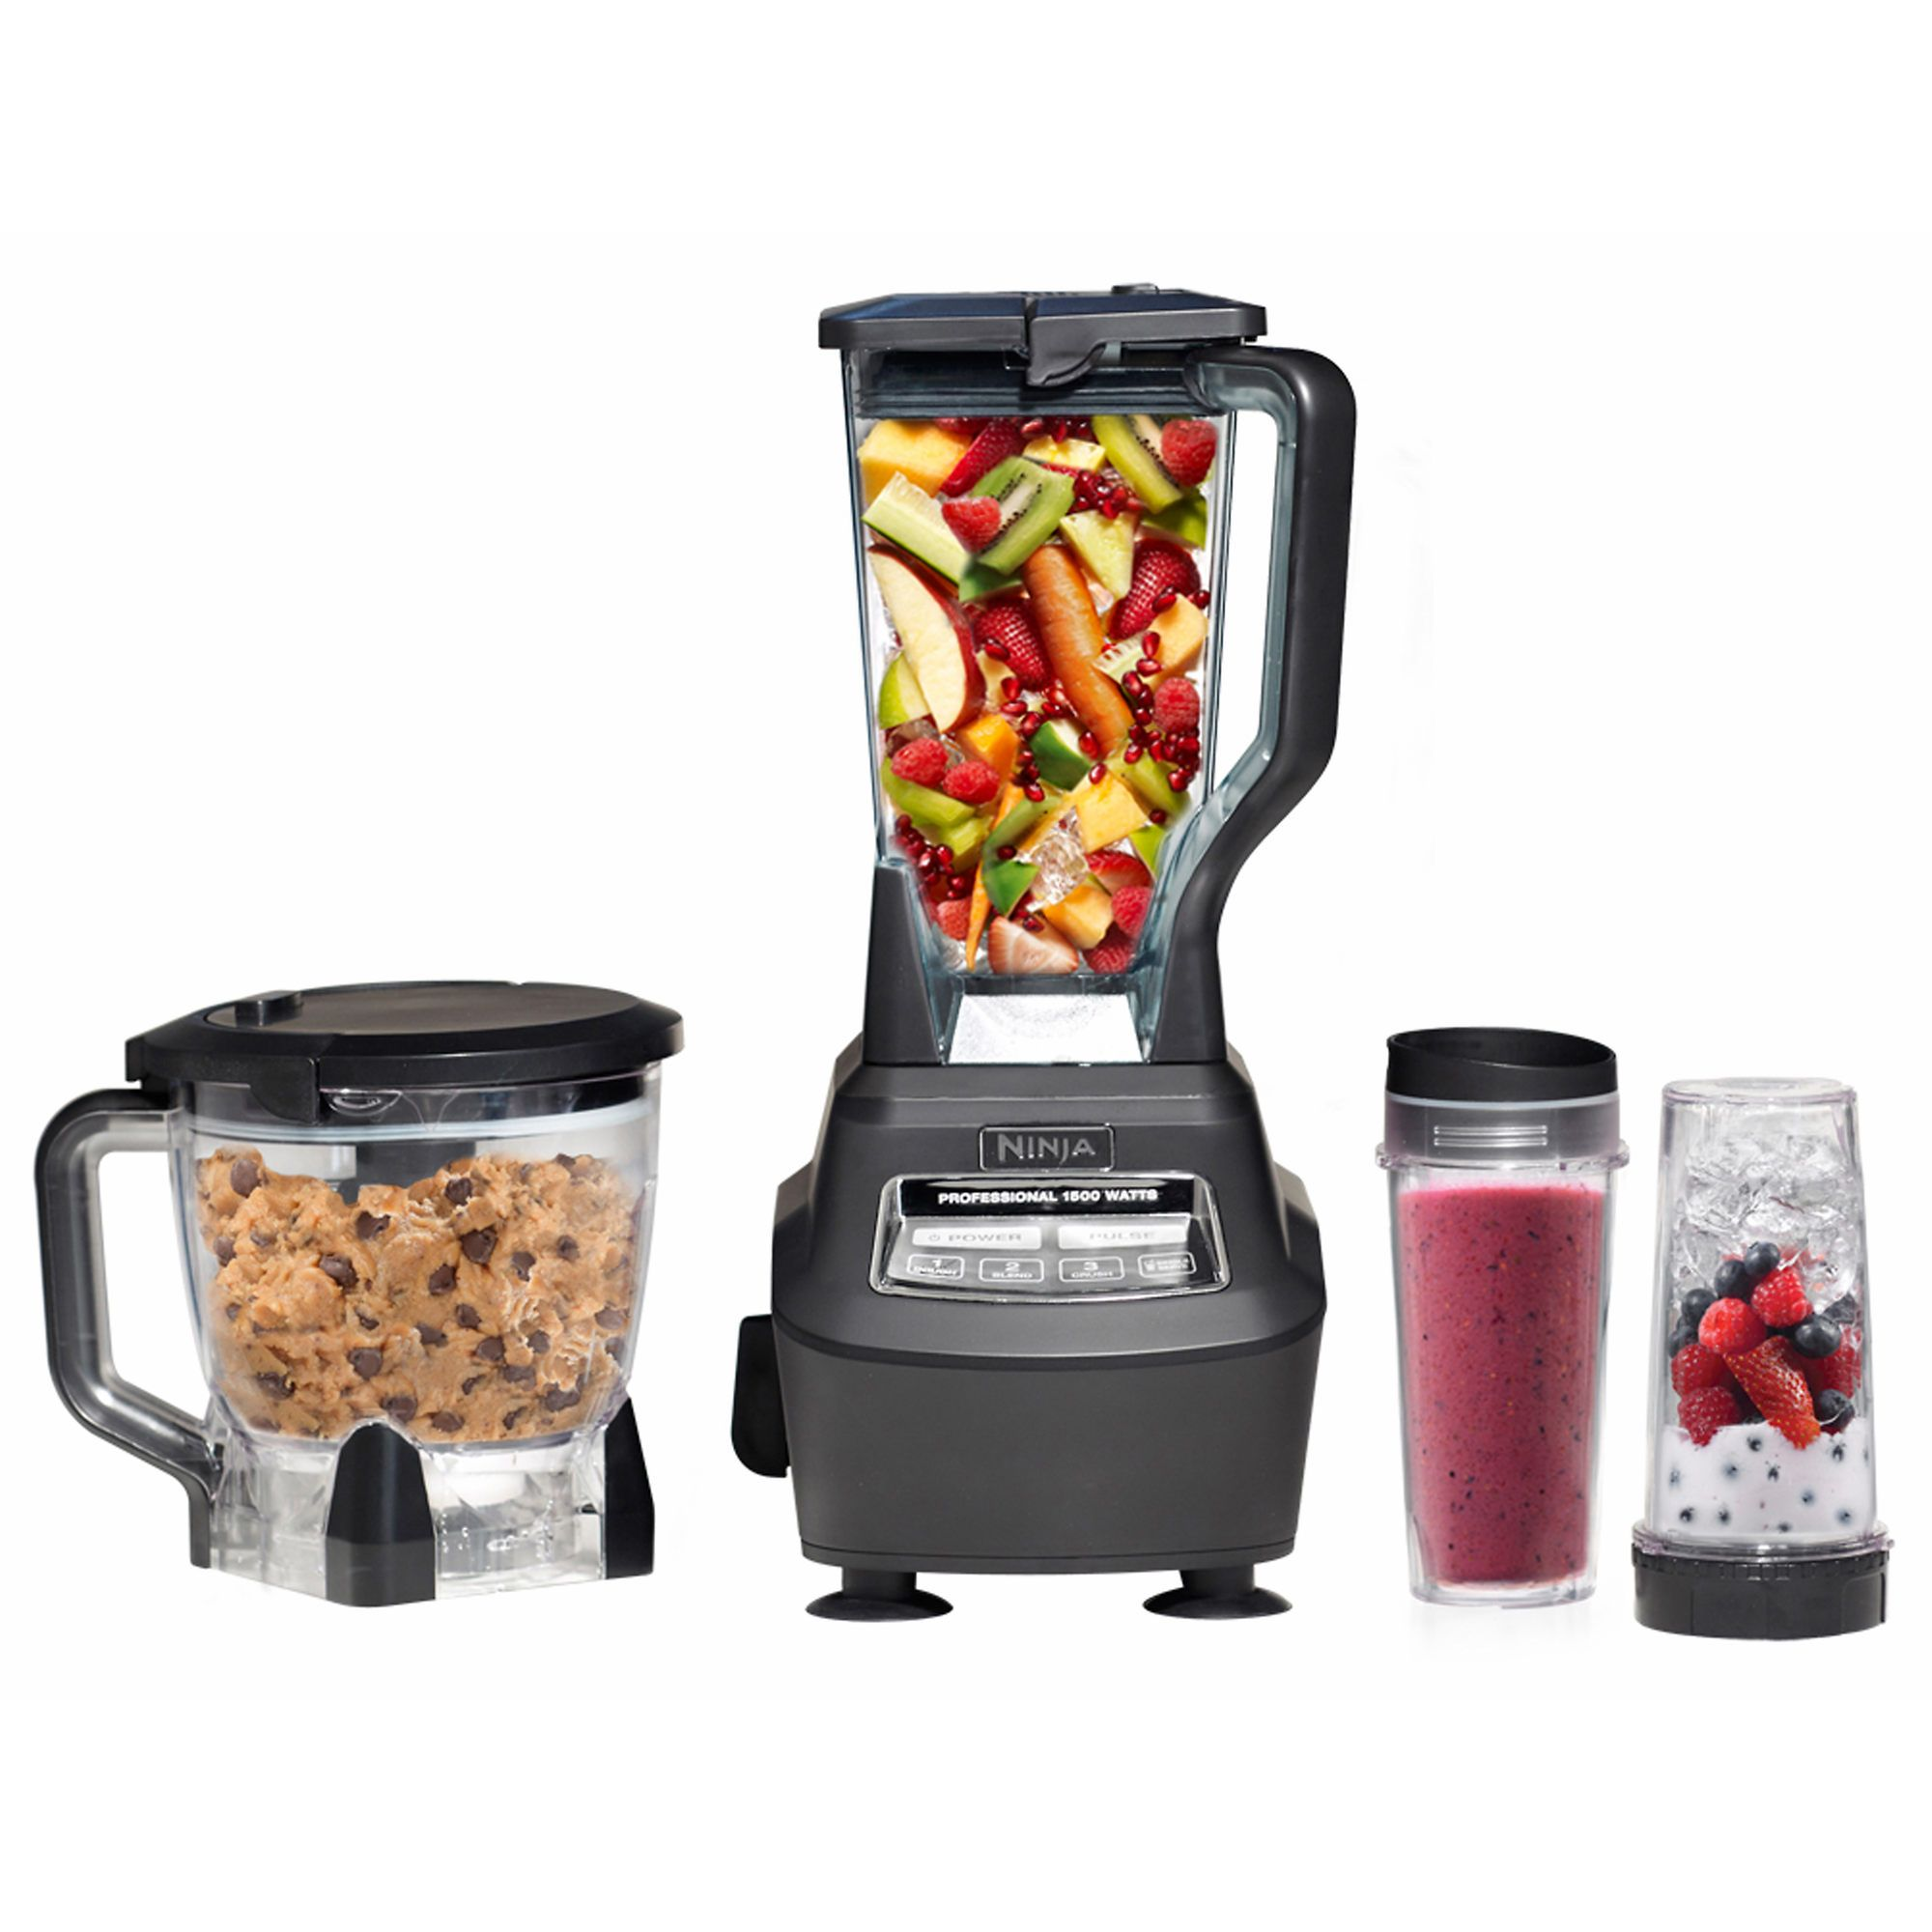 mega kitchen life my ninja simplified system professional